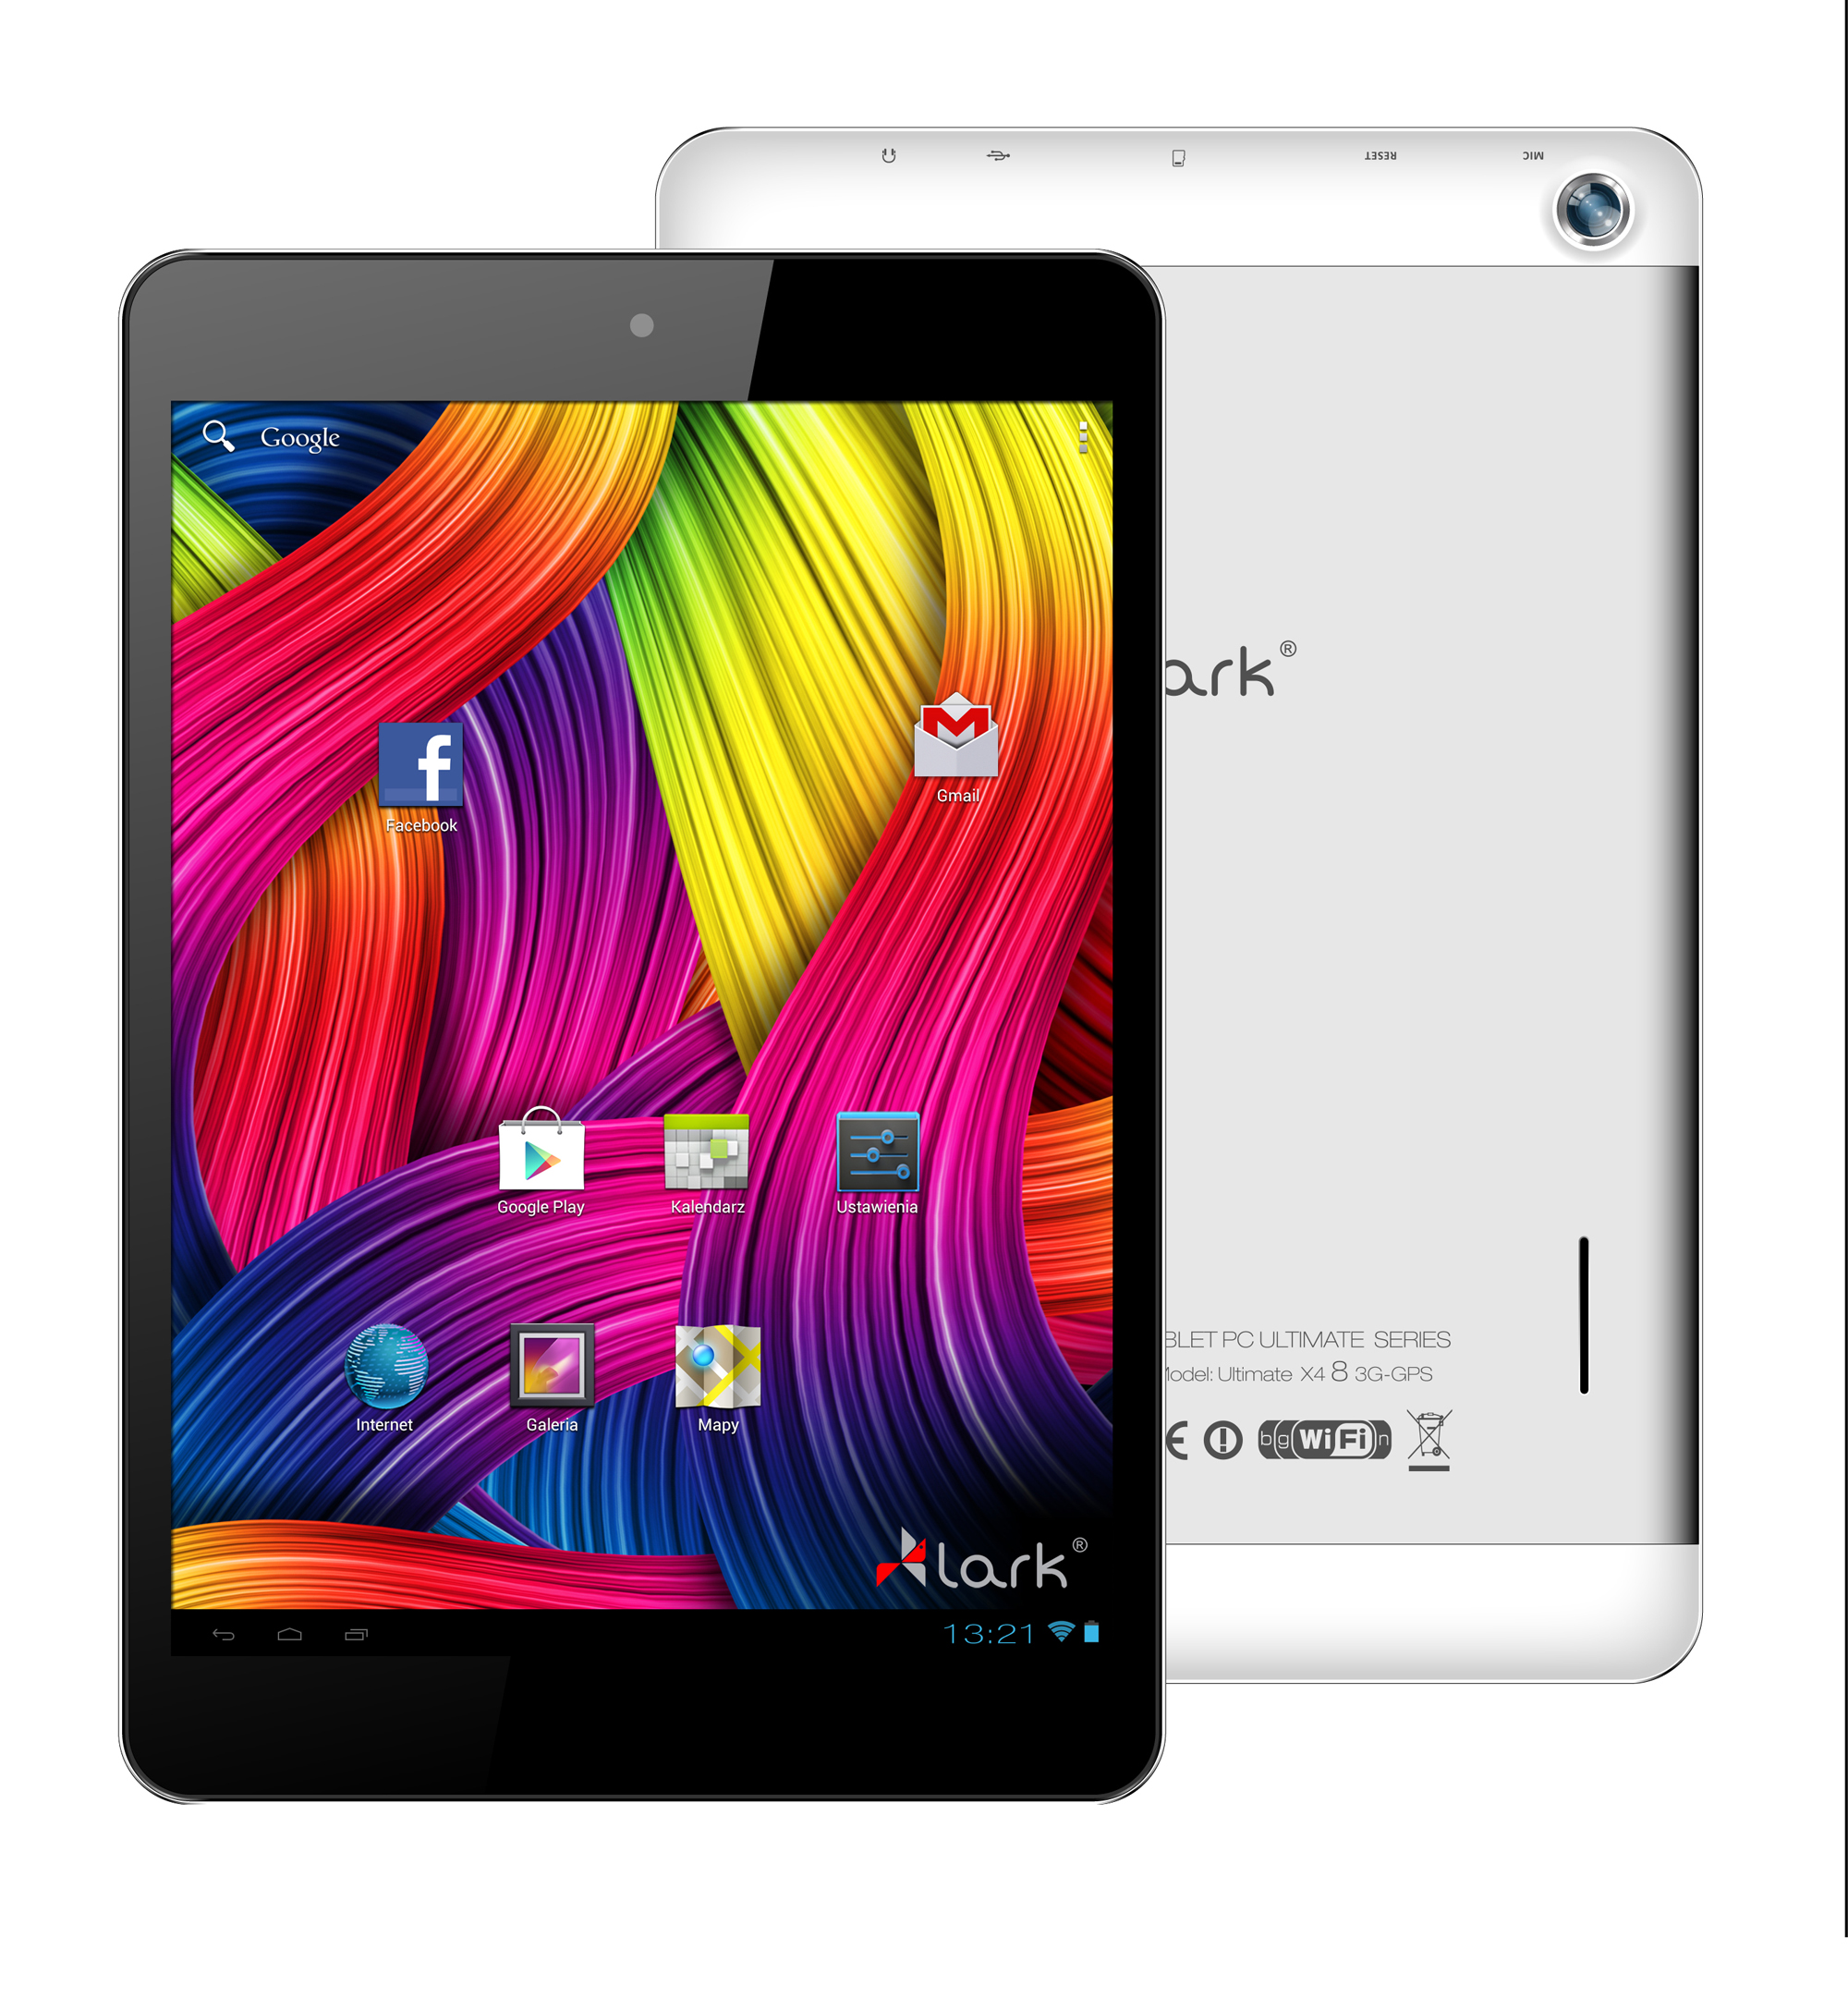 Tablet Lark Ultimate X4 8 3G Za 549 Zlotych Co W Zamian